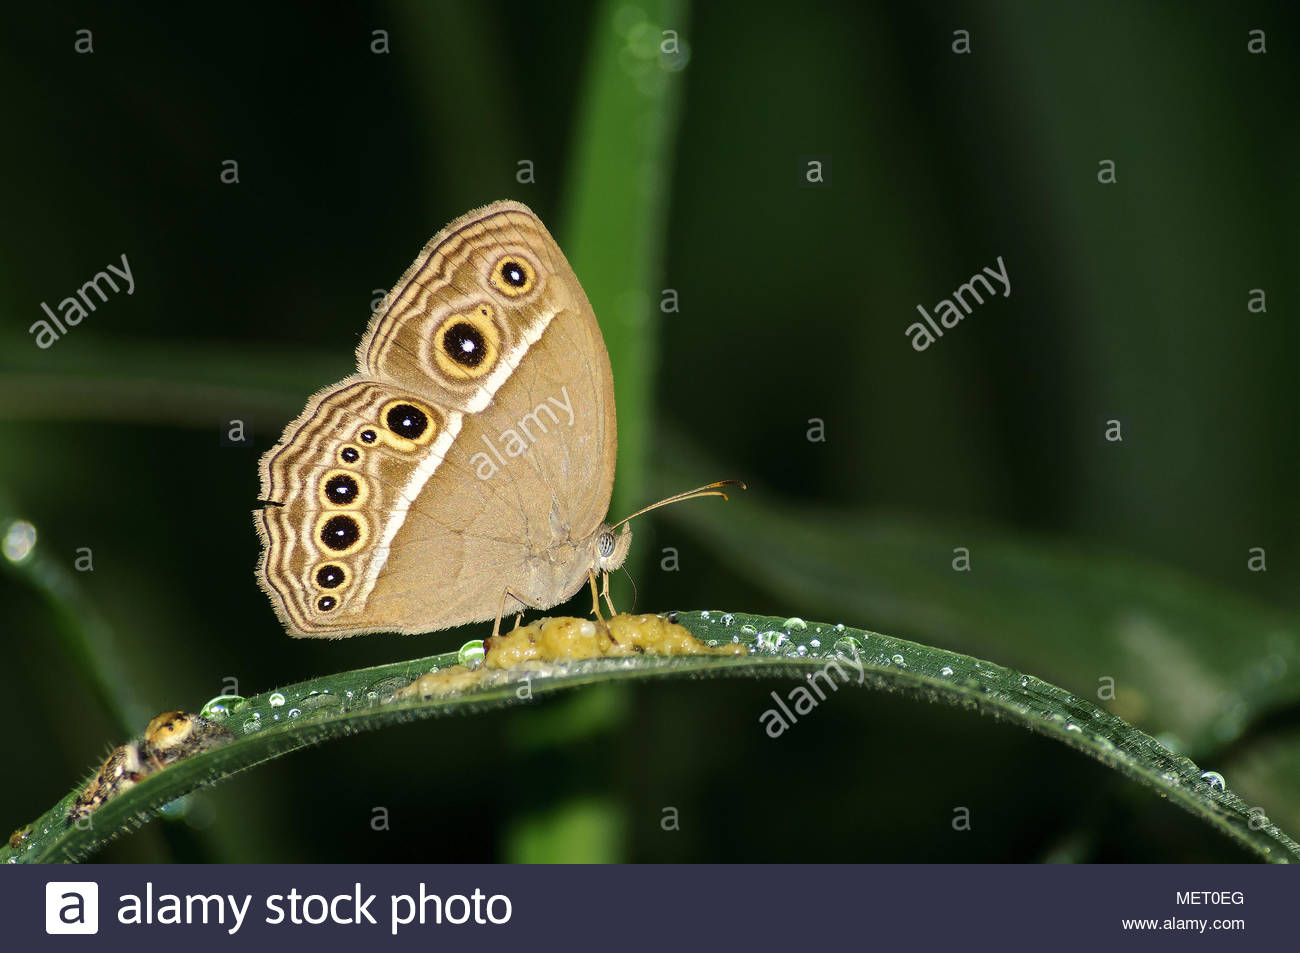 This is a kind of butterfly with sober colors. Upperside dark Vandyke brown; forewings and hindwings with slender subterminal and terminal pale lines. - Stock Image